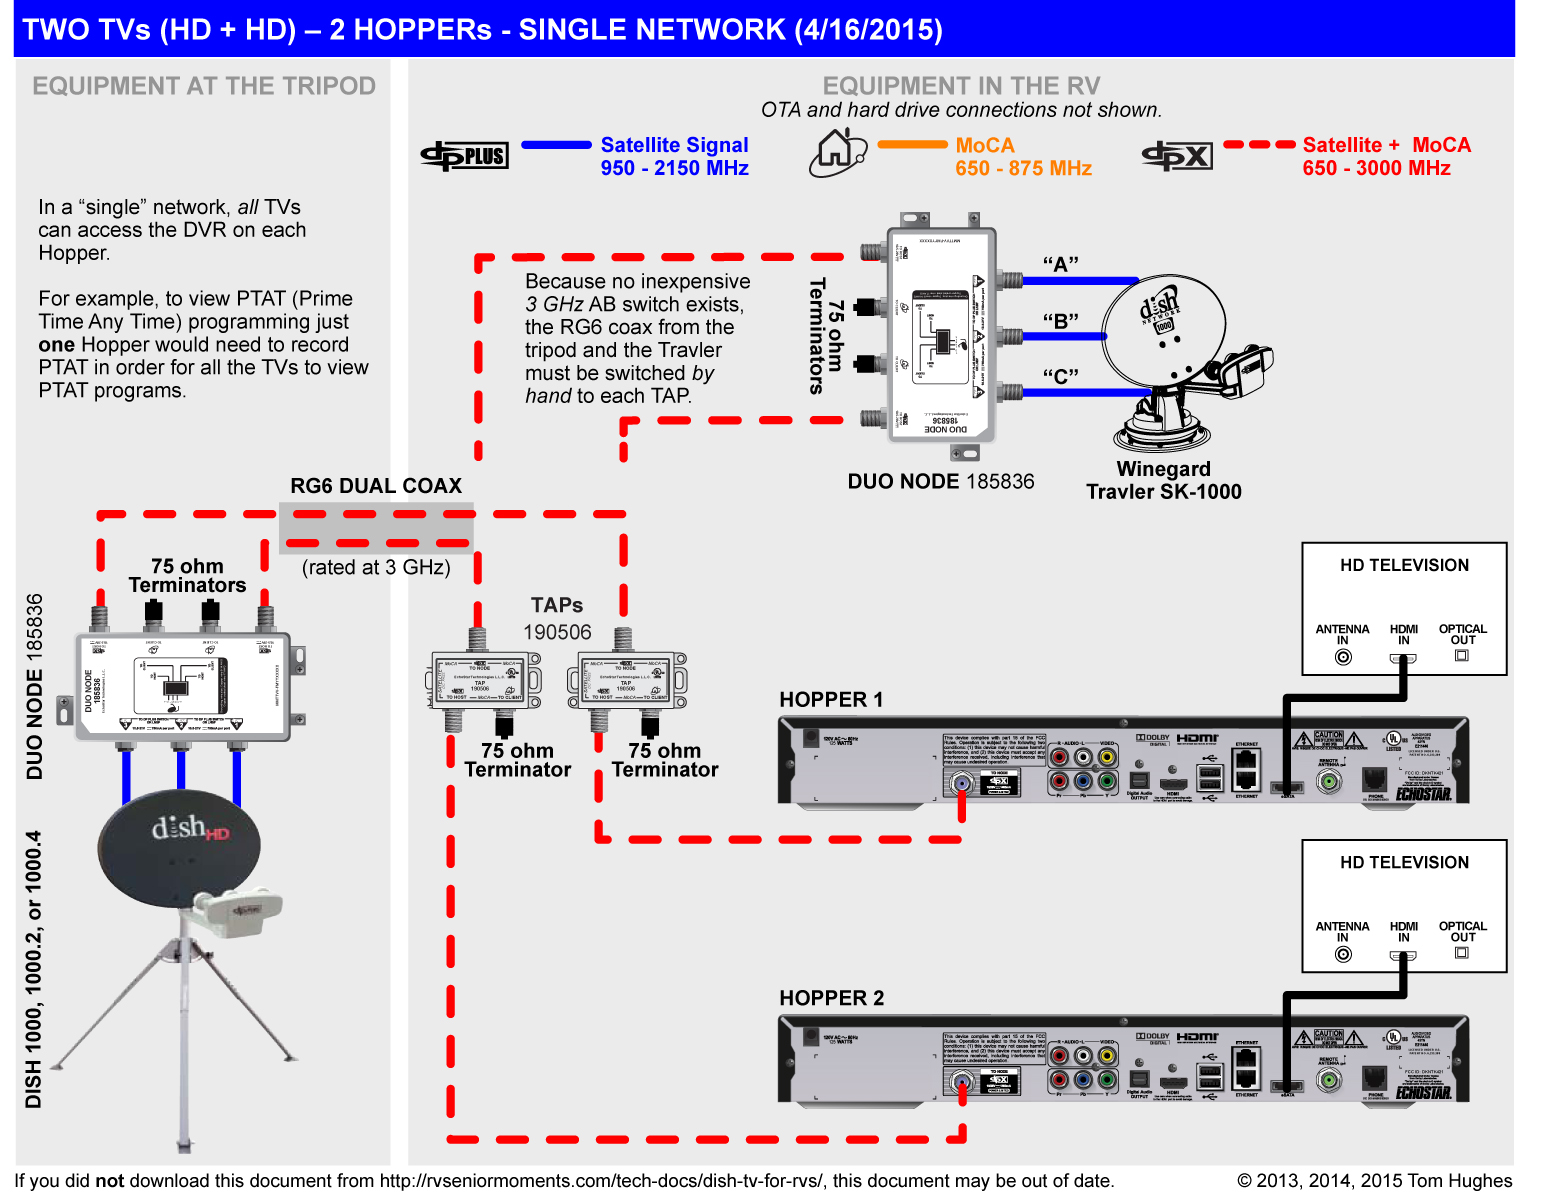 210_dish_twotvs_two_hoppers_single_network_hdhd720dpi directv whole home dvr wiring diagram directv free wiring dvd wiring diagram 2011 honda accord at crackthecode.co